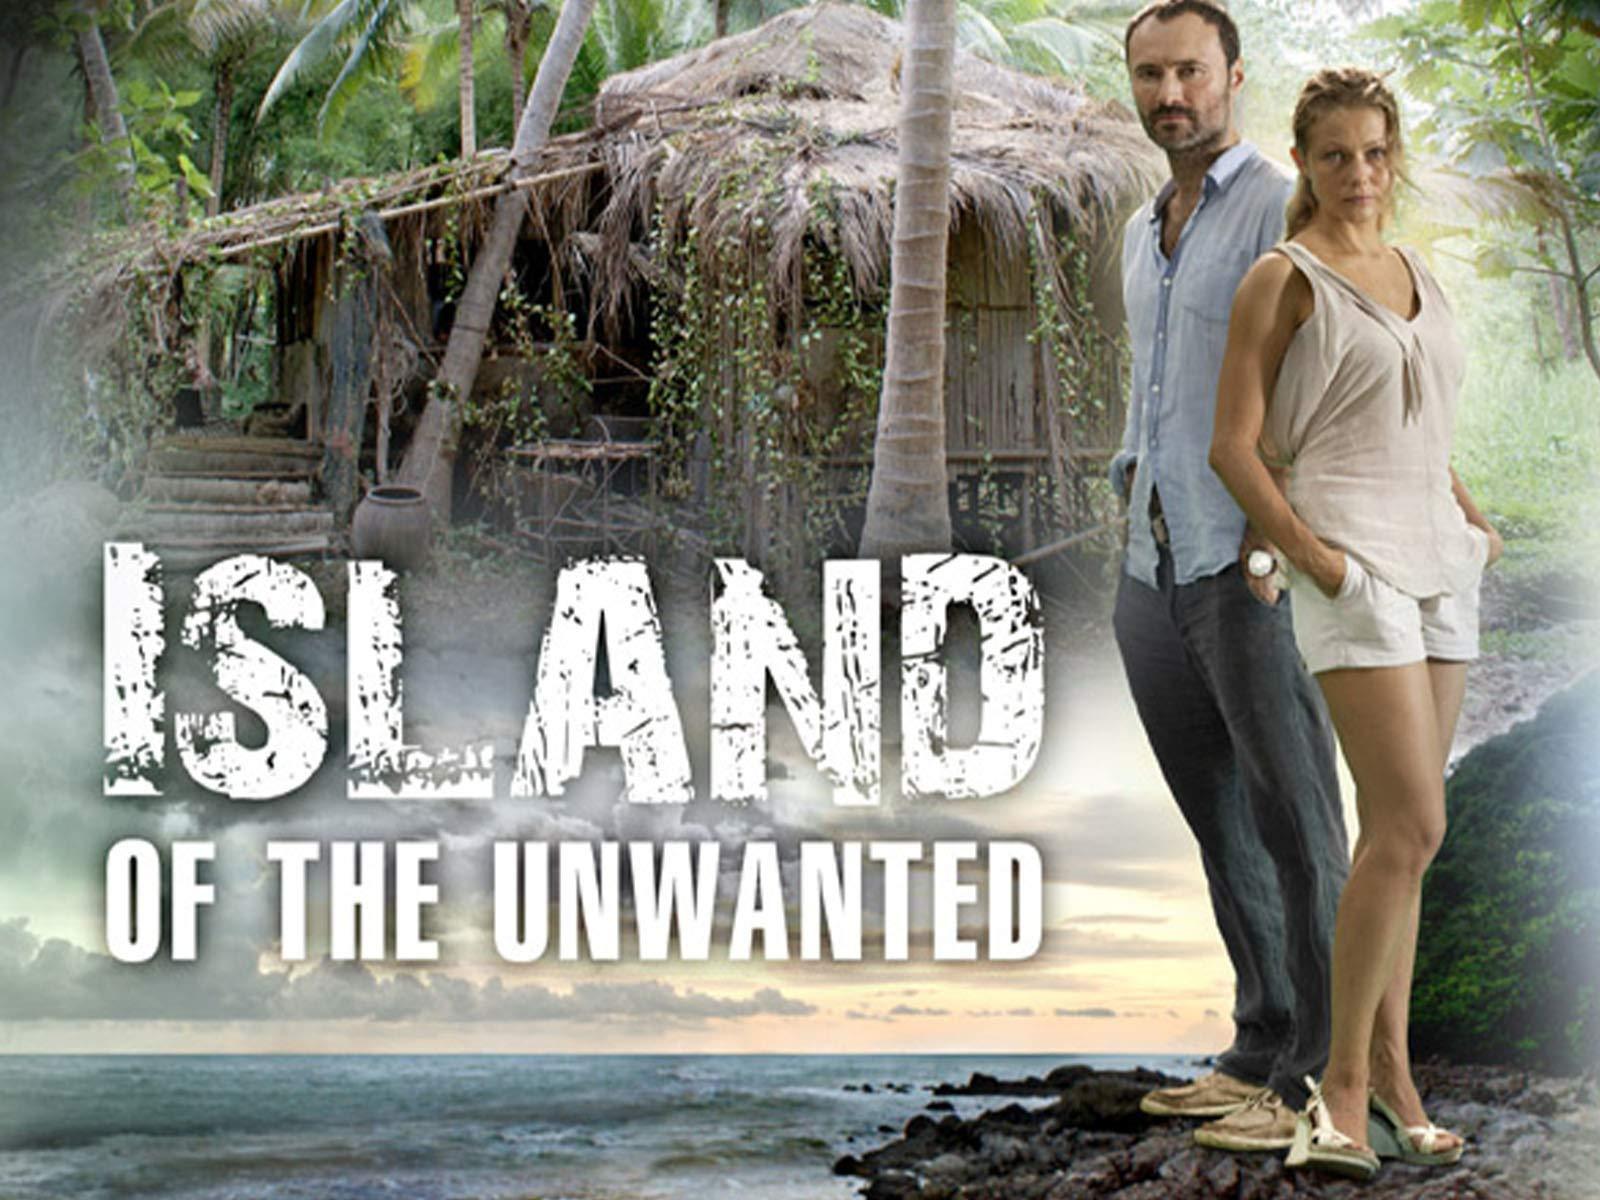 Island of the Unwanted